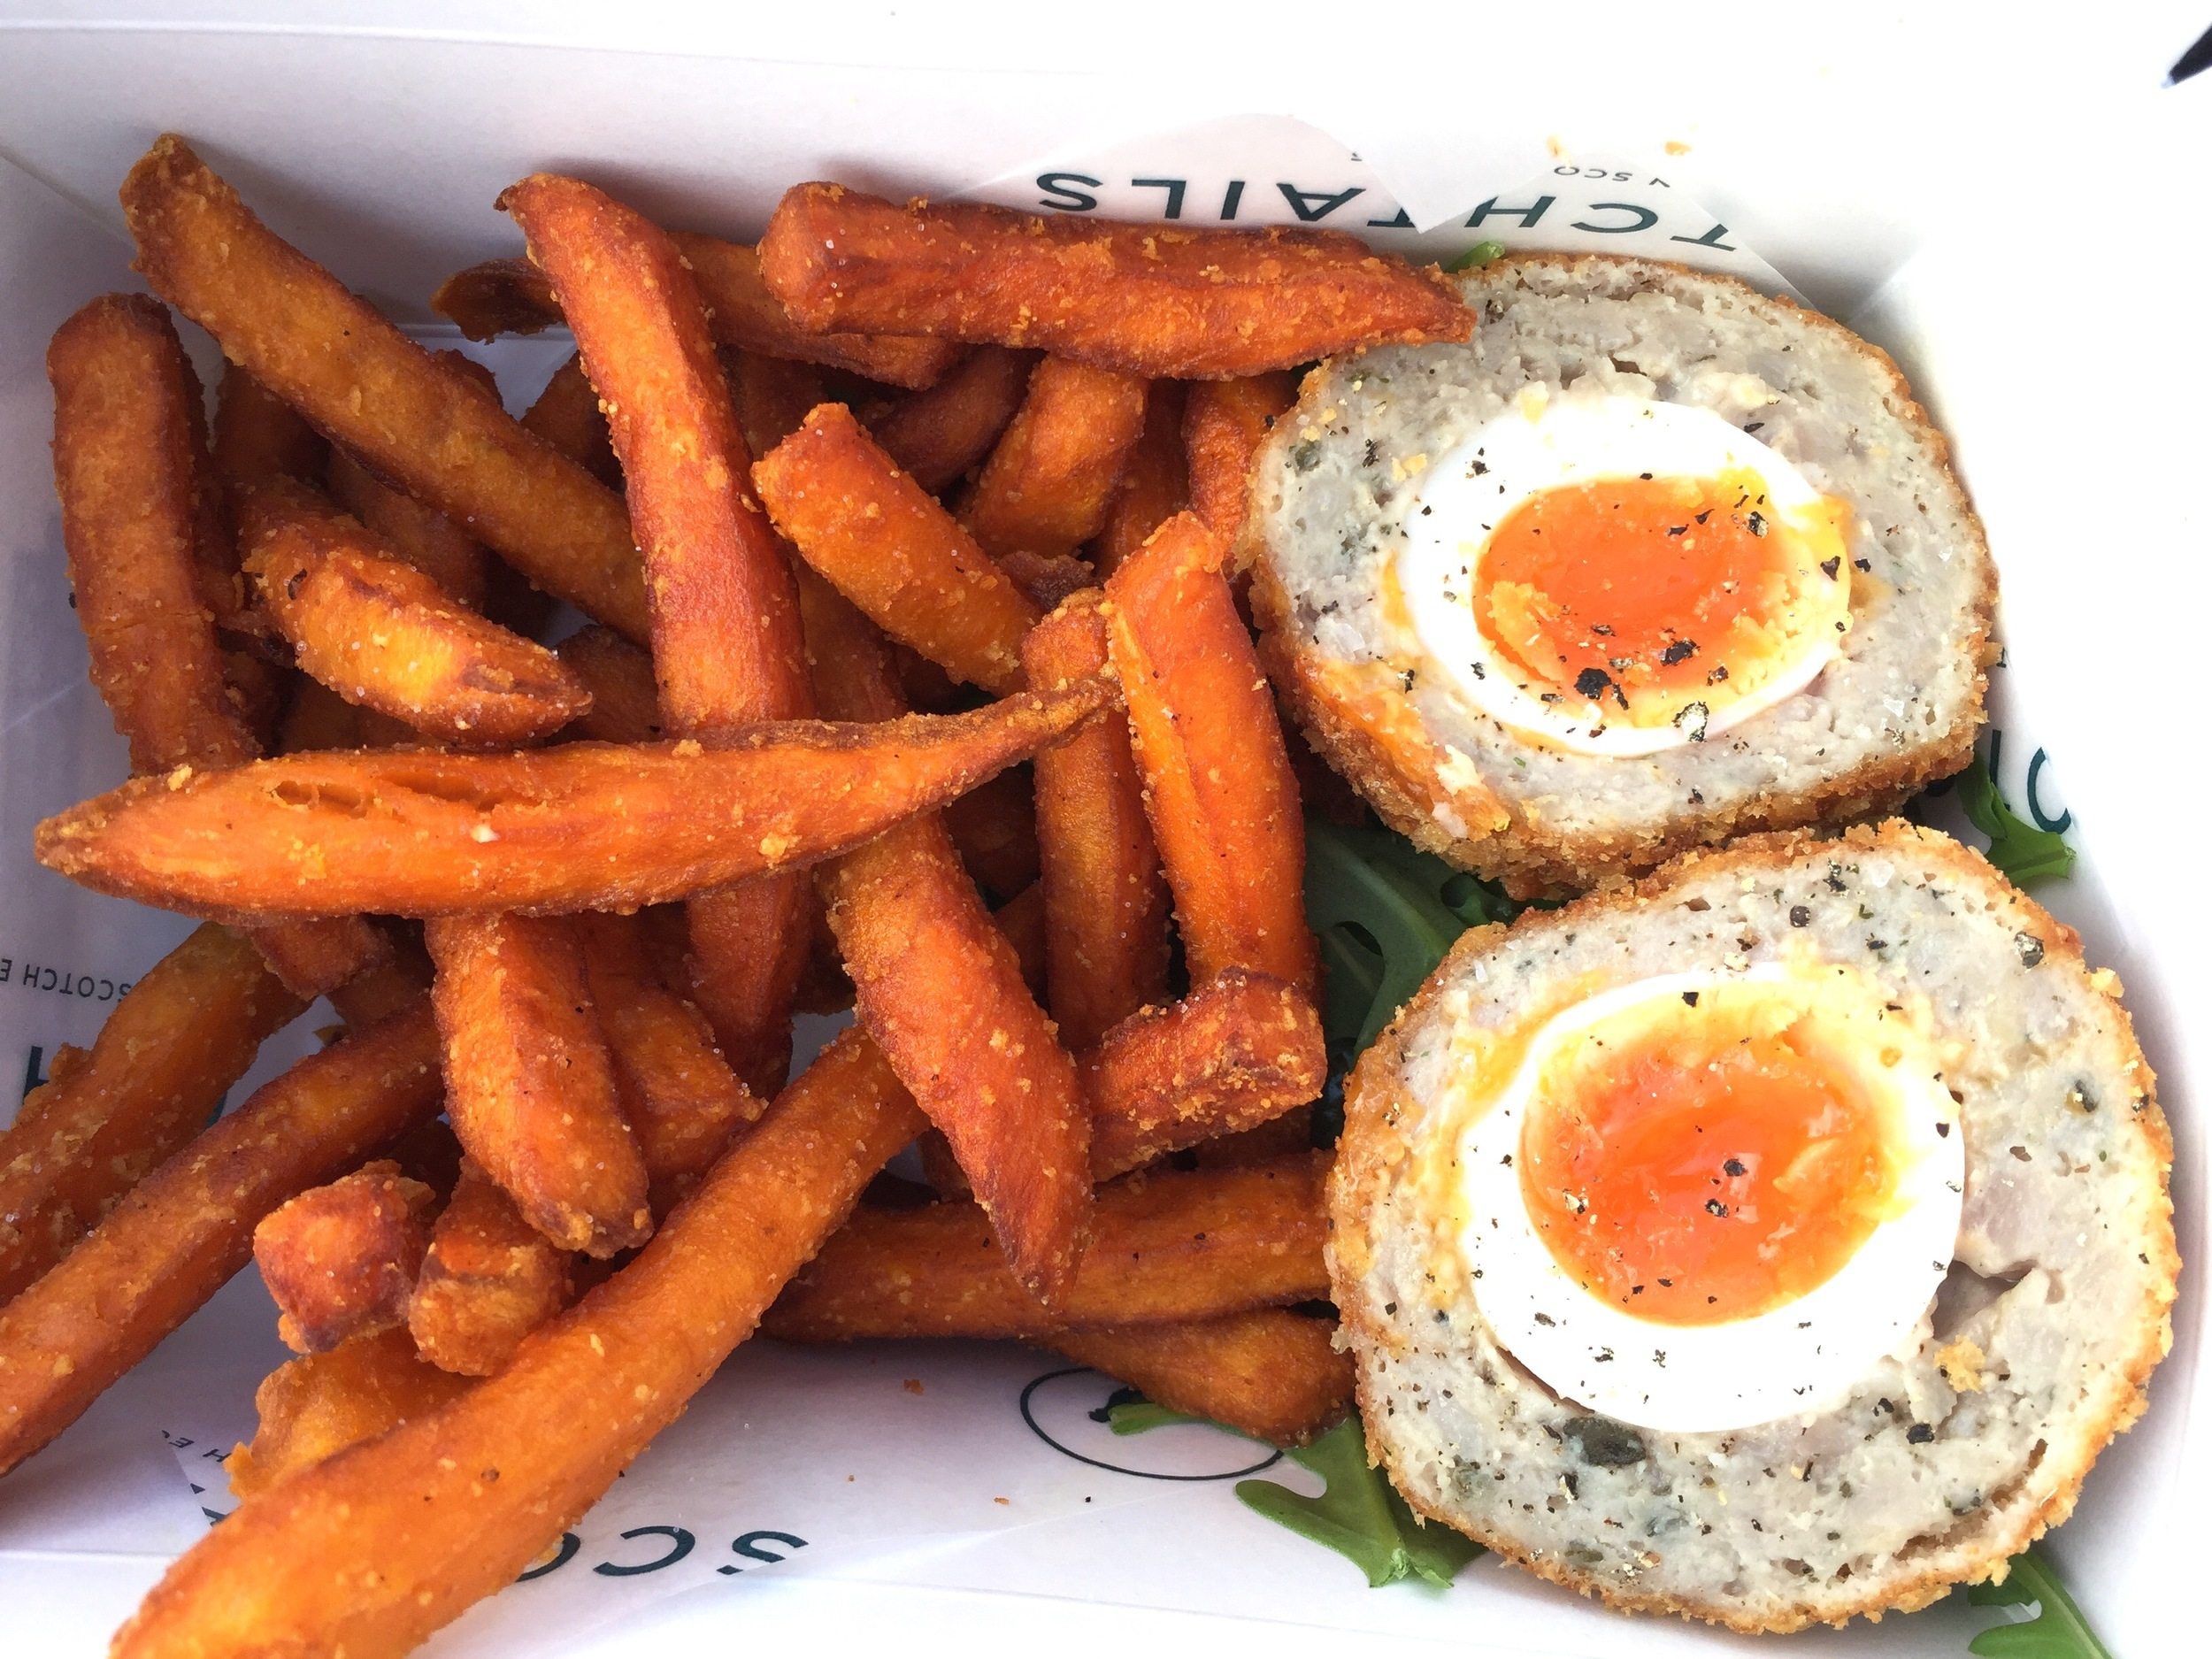 Best lunch I've had in a long time - Scotch Eggs from a vendor in Borough Market.